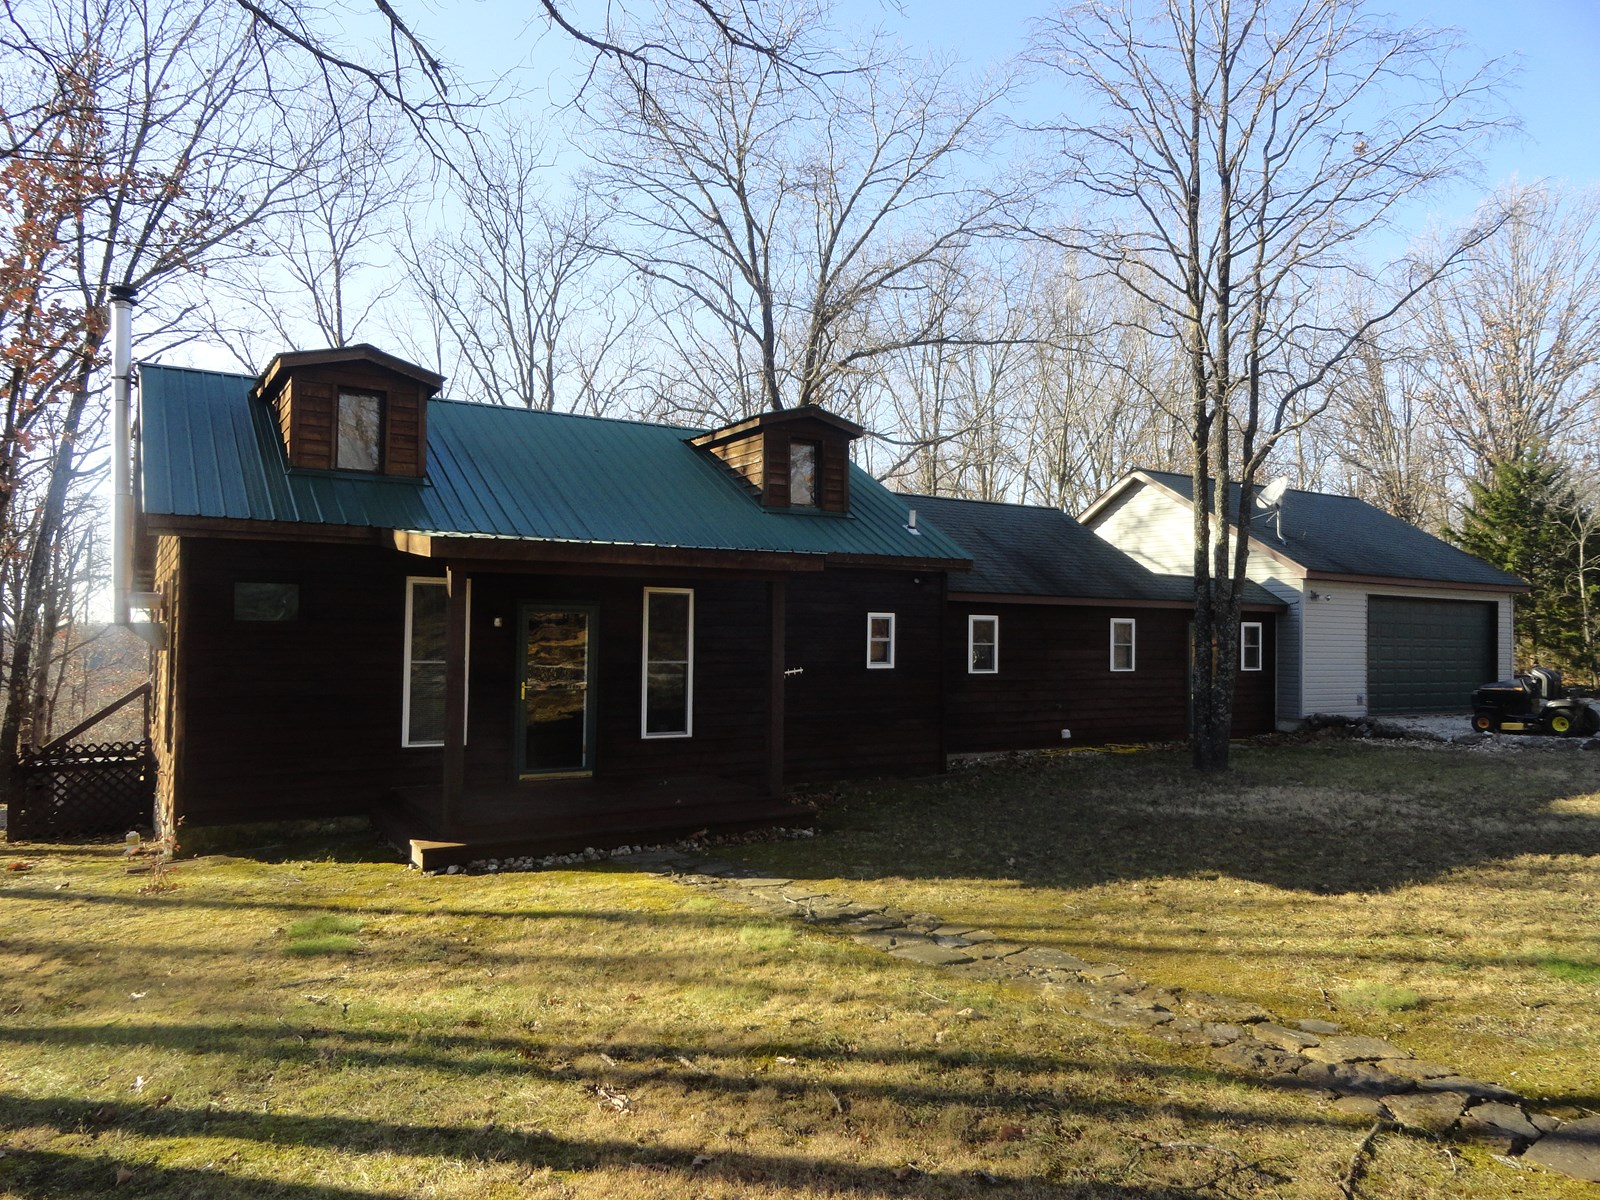 County home for sale on 10 acres